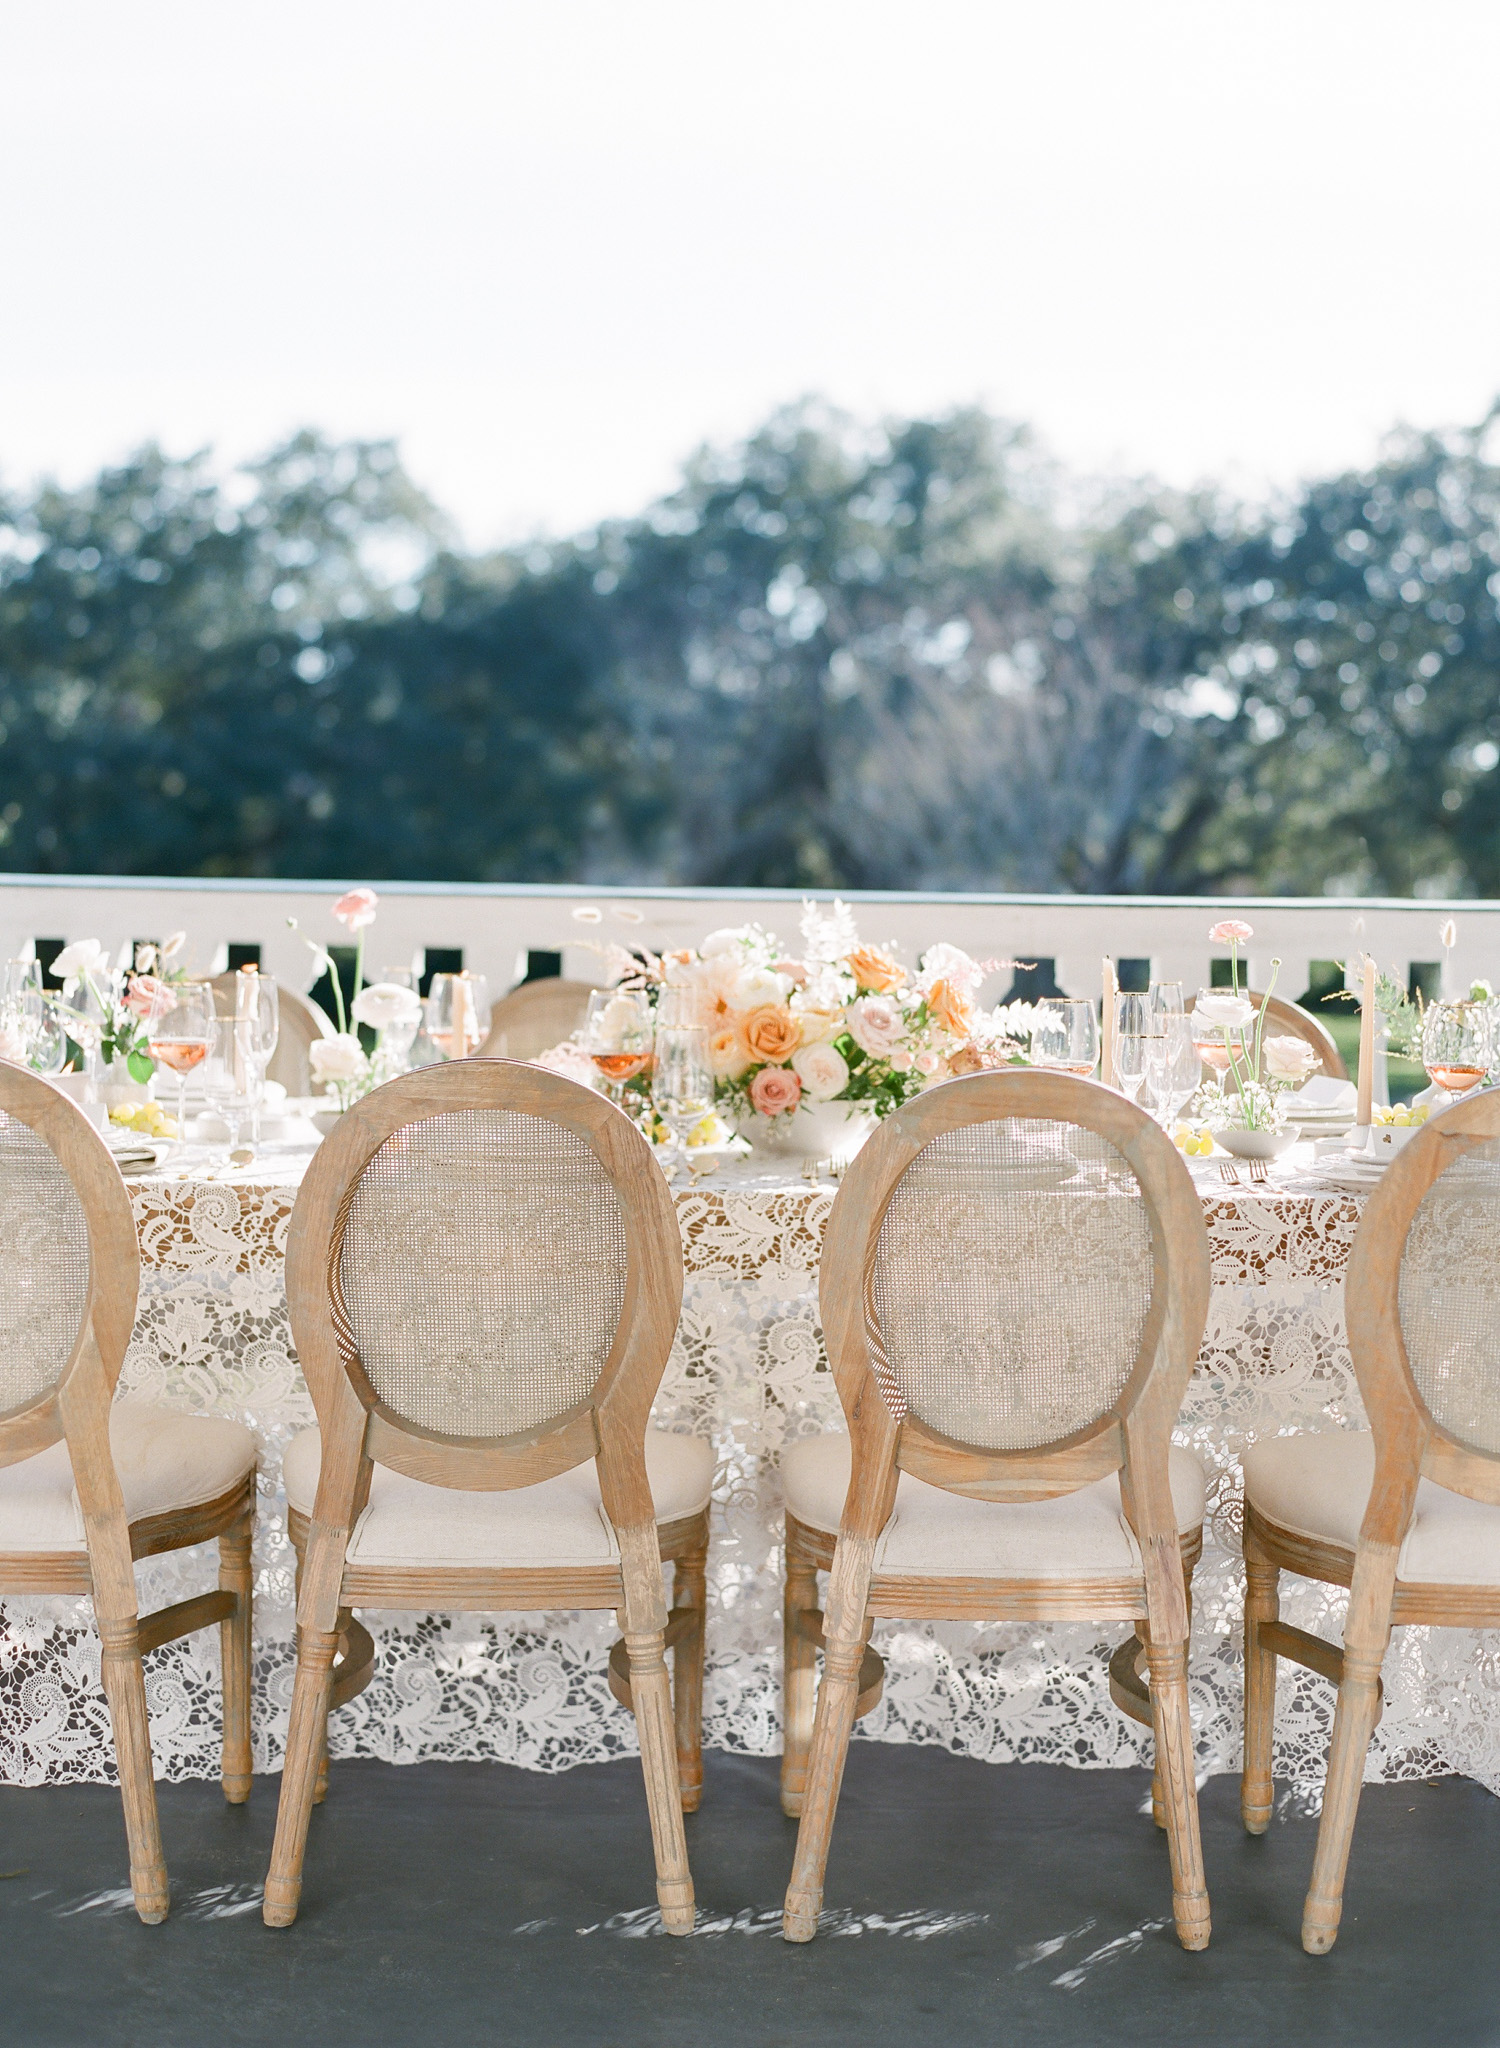 Wedding-Chairs.jpg